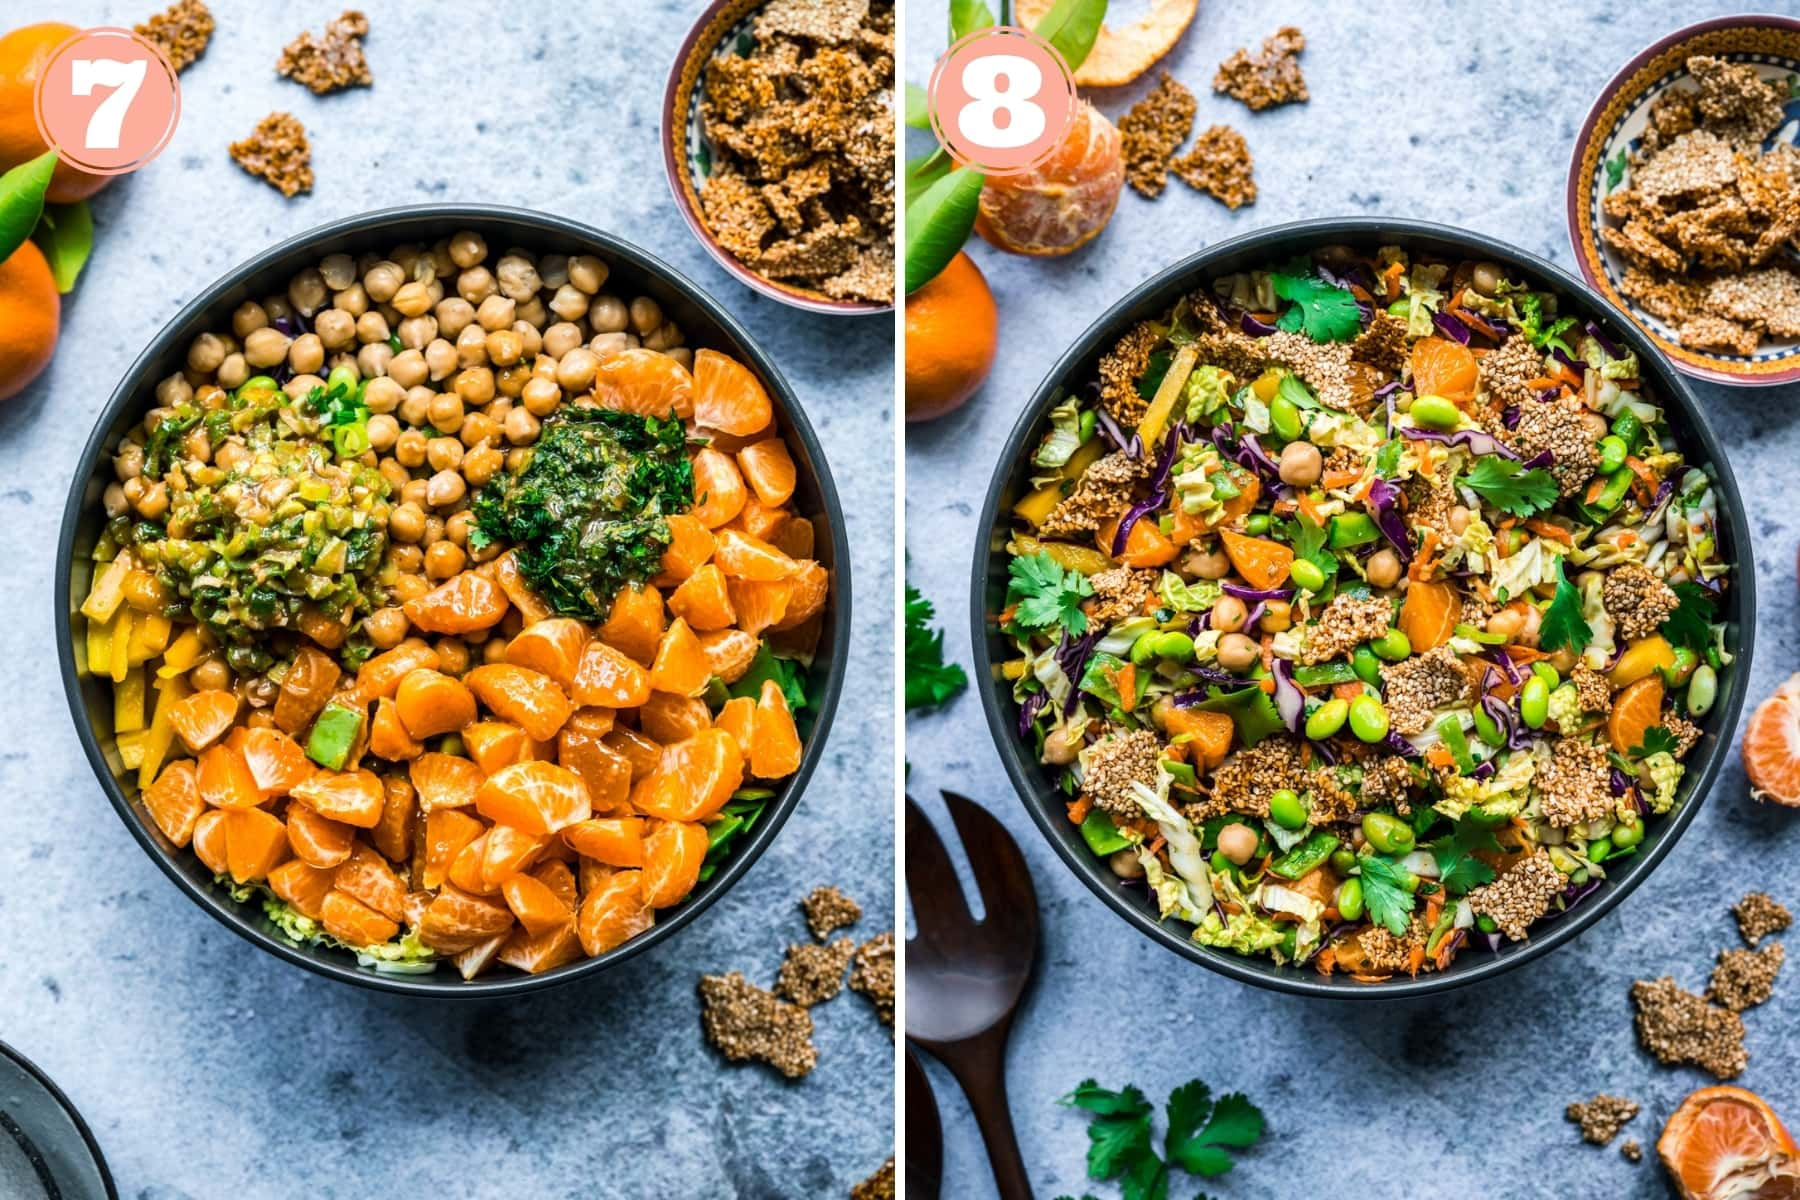 before and after mixing together ingredients for sesame chickpea salad in a large serving bowl.